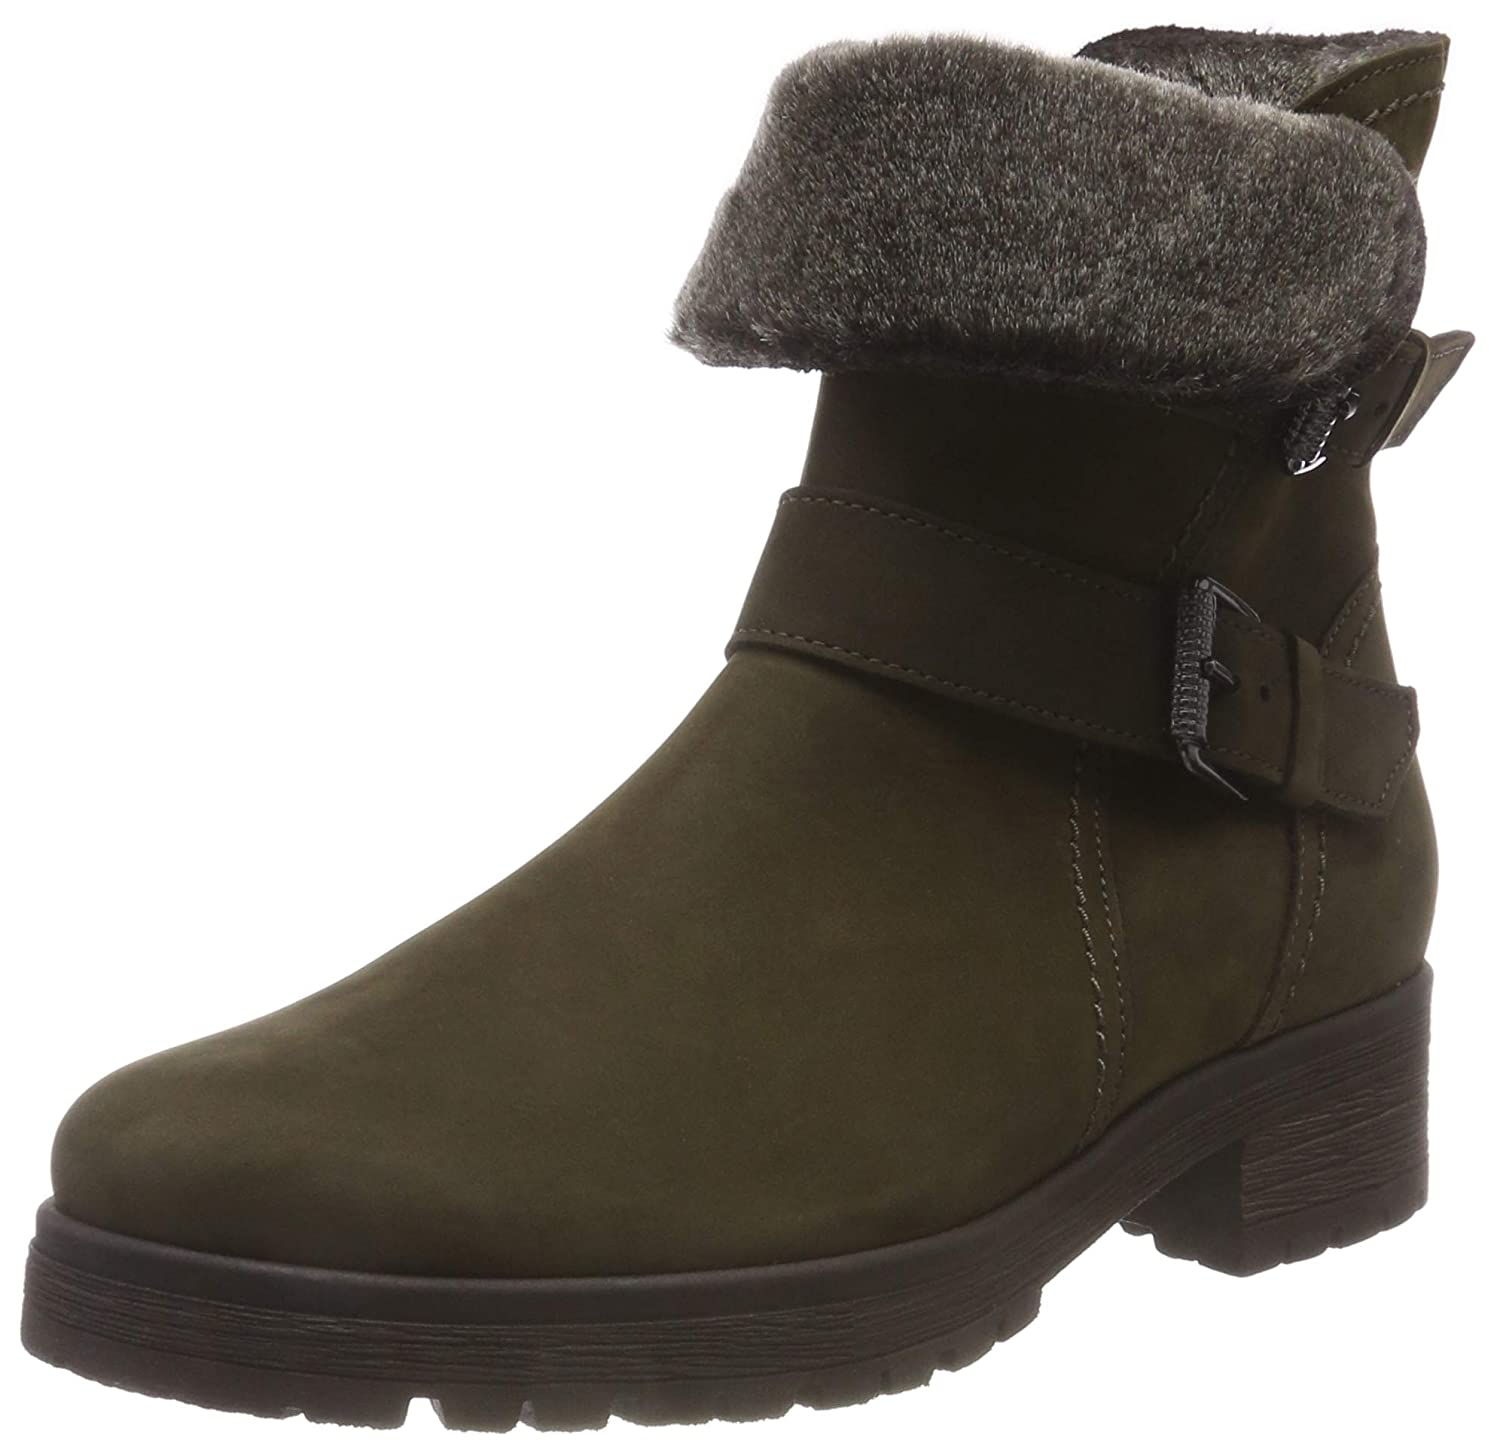 Gabor Ankle Boot Gabor (Mel.) Boot Shiraz 92.093 Vert (Military (Mel.) 33) 46081d7 - shopssong.space